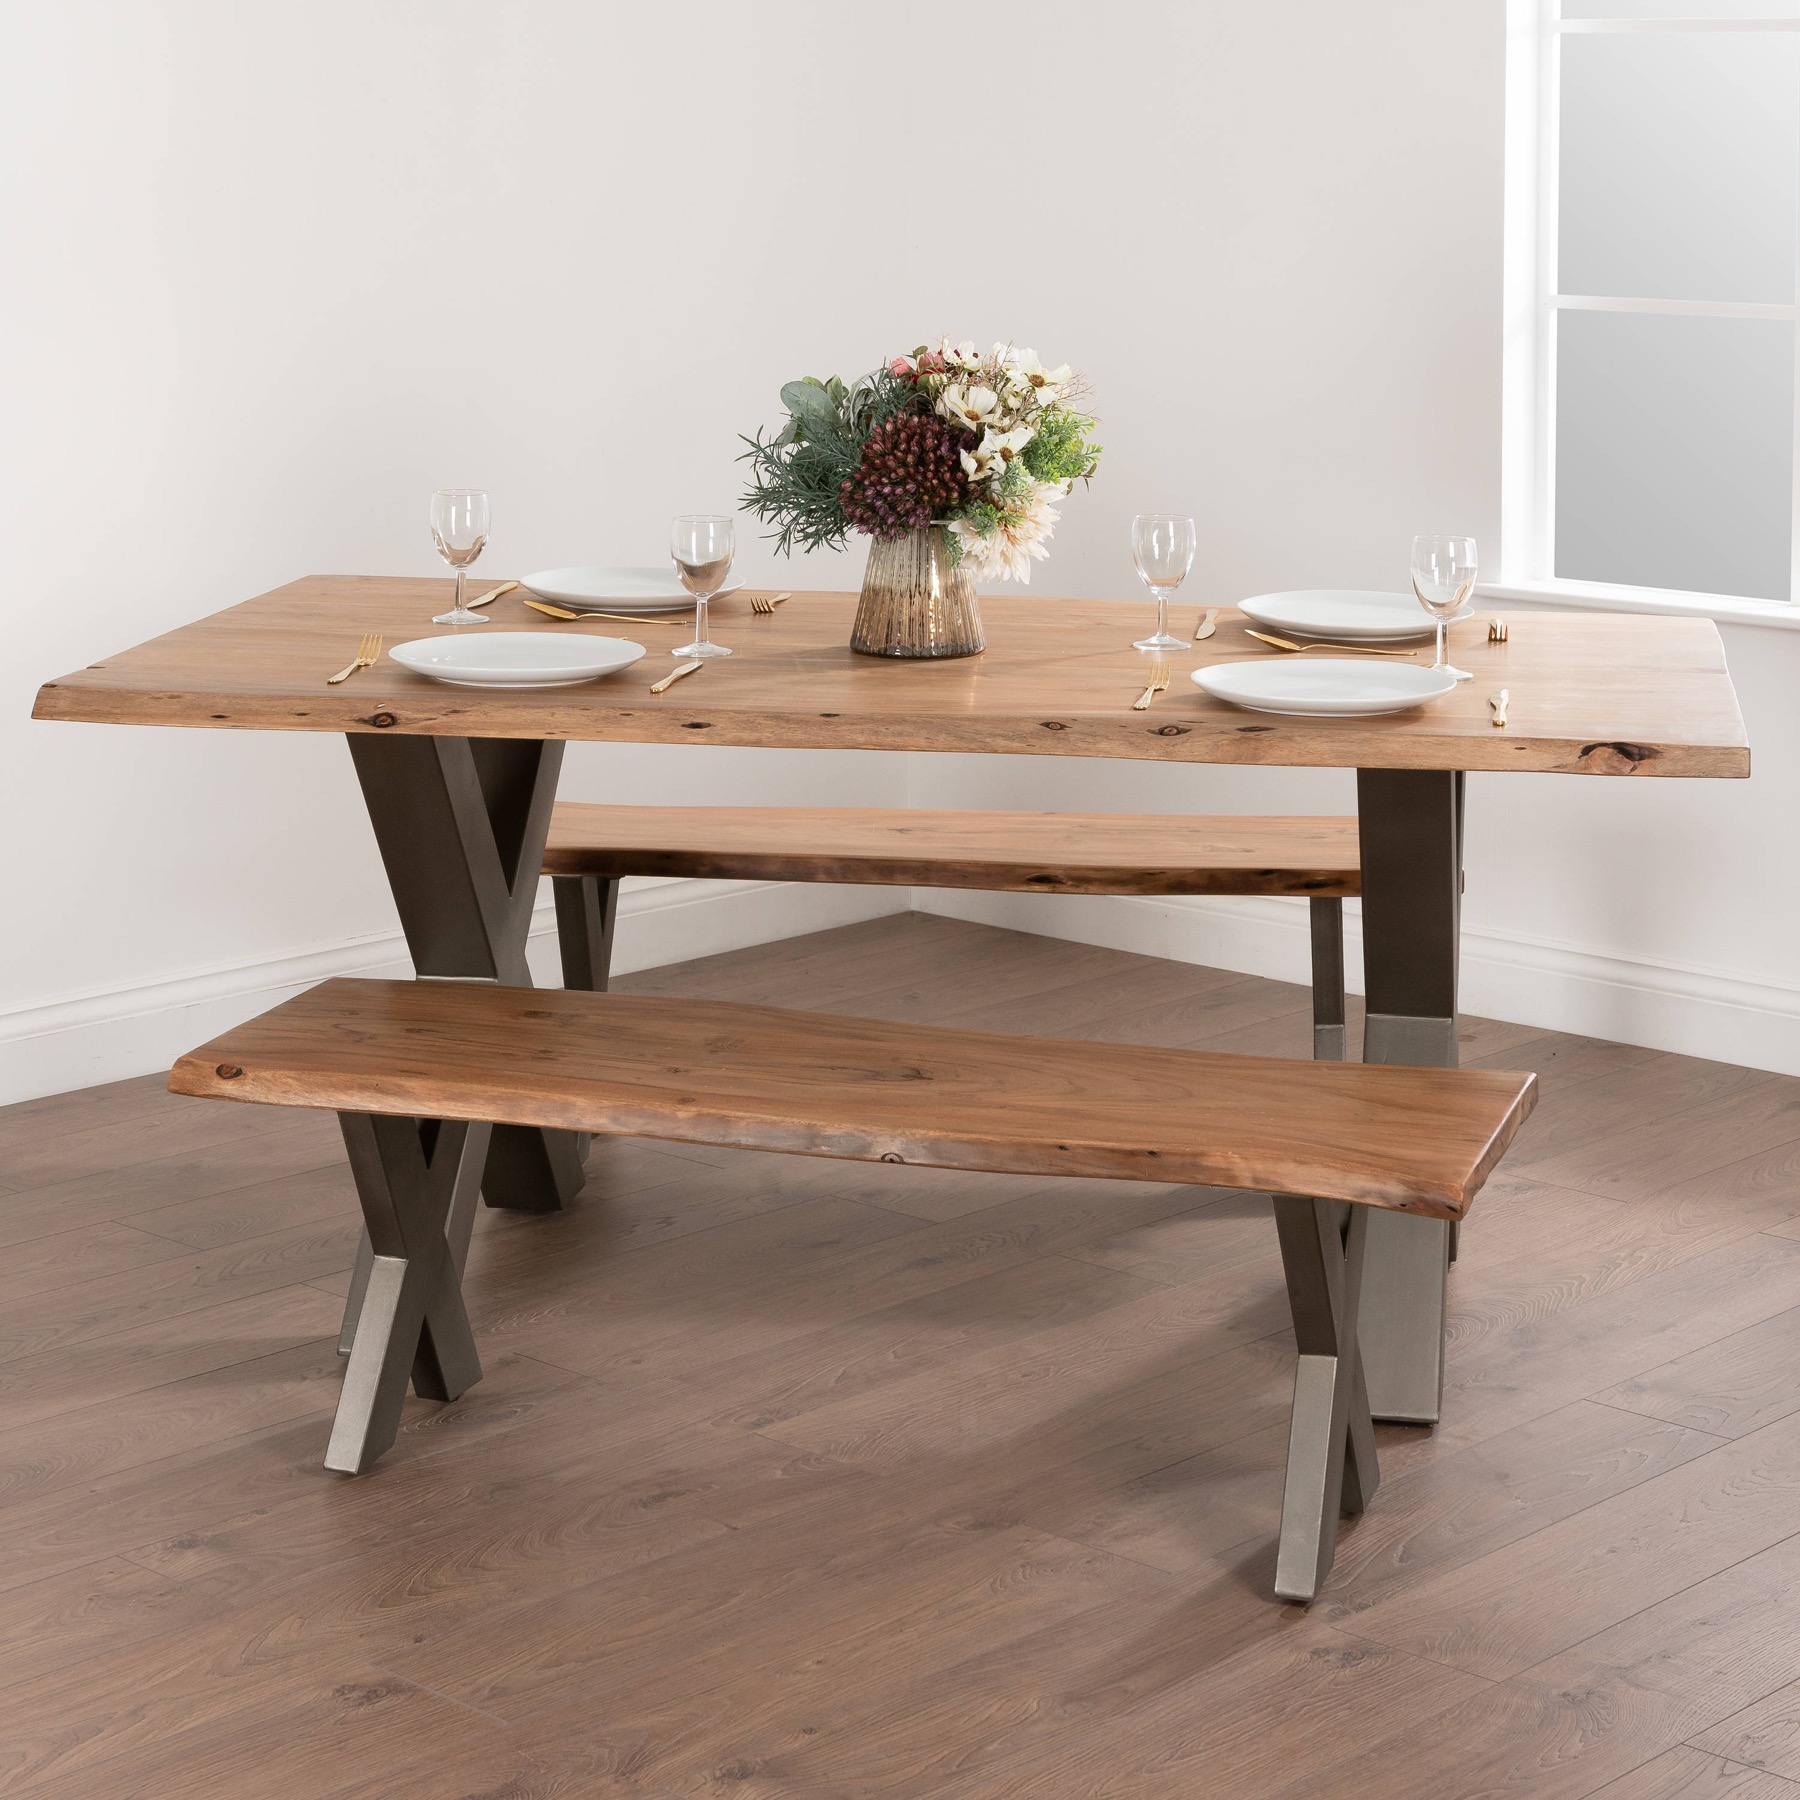 Live Edge Collection Bench - Image 4